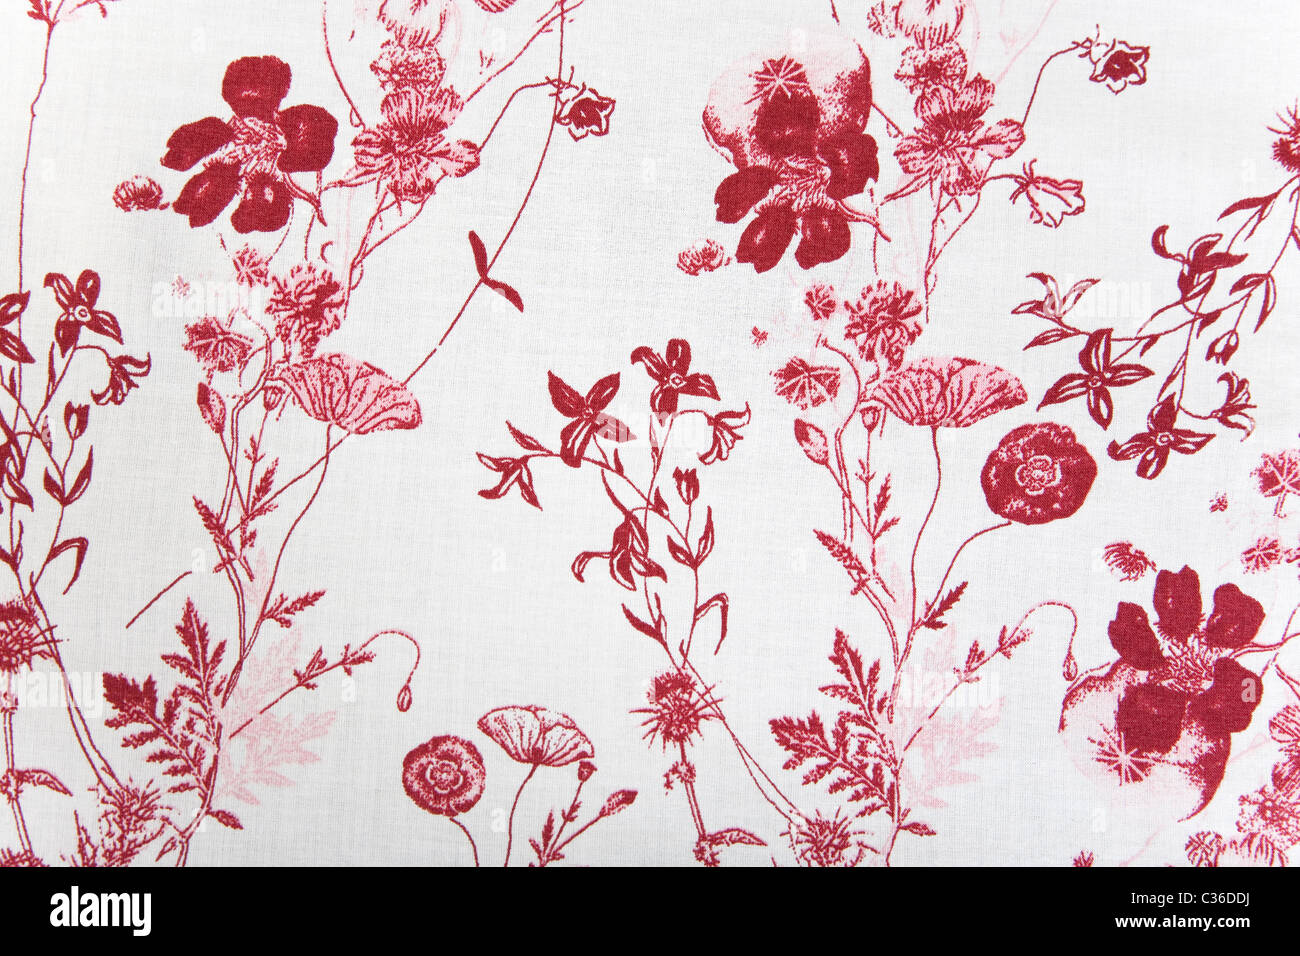 flower fabric texture, red plants on white background - Stock Image